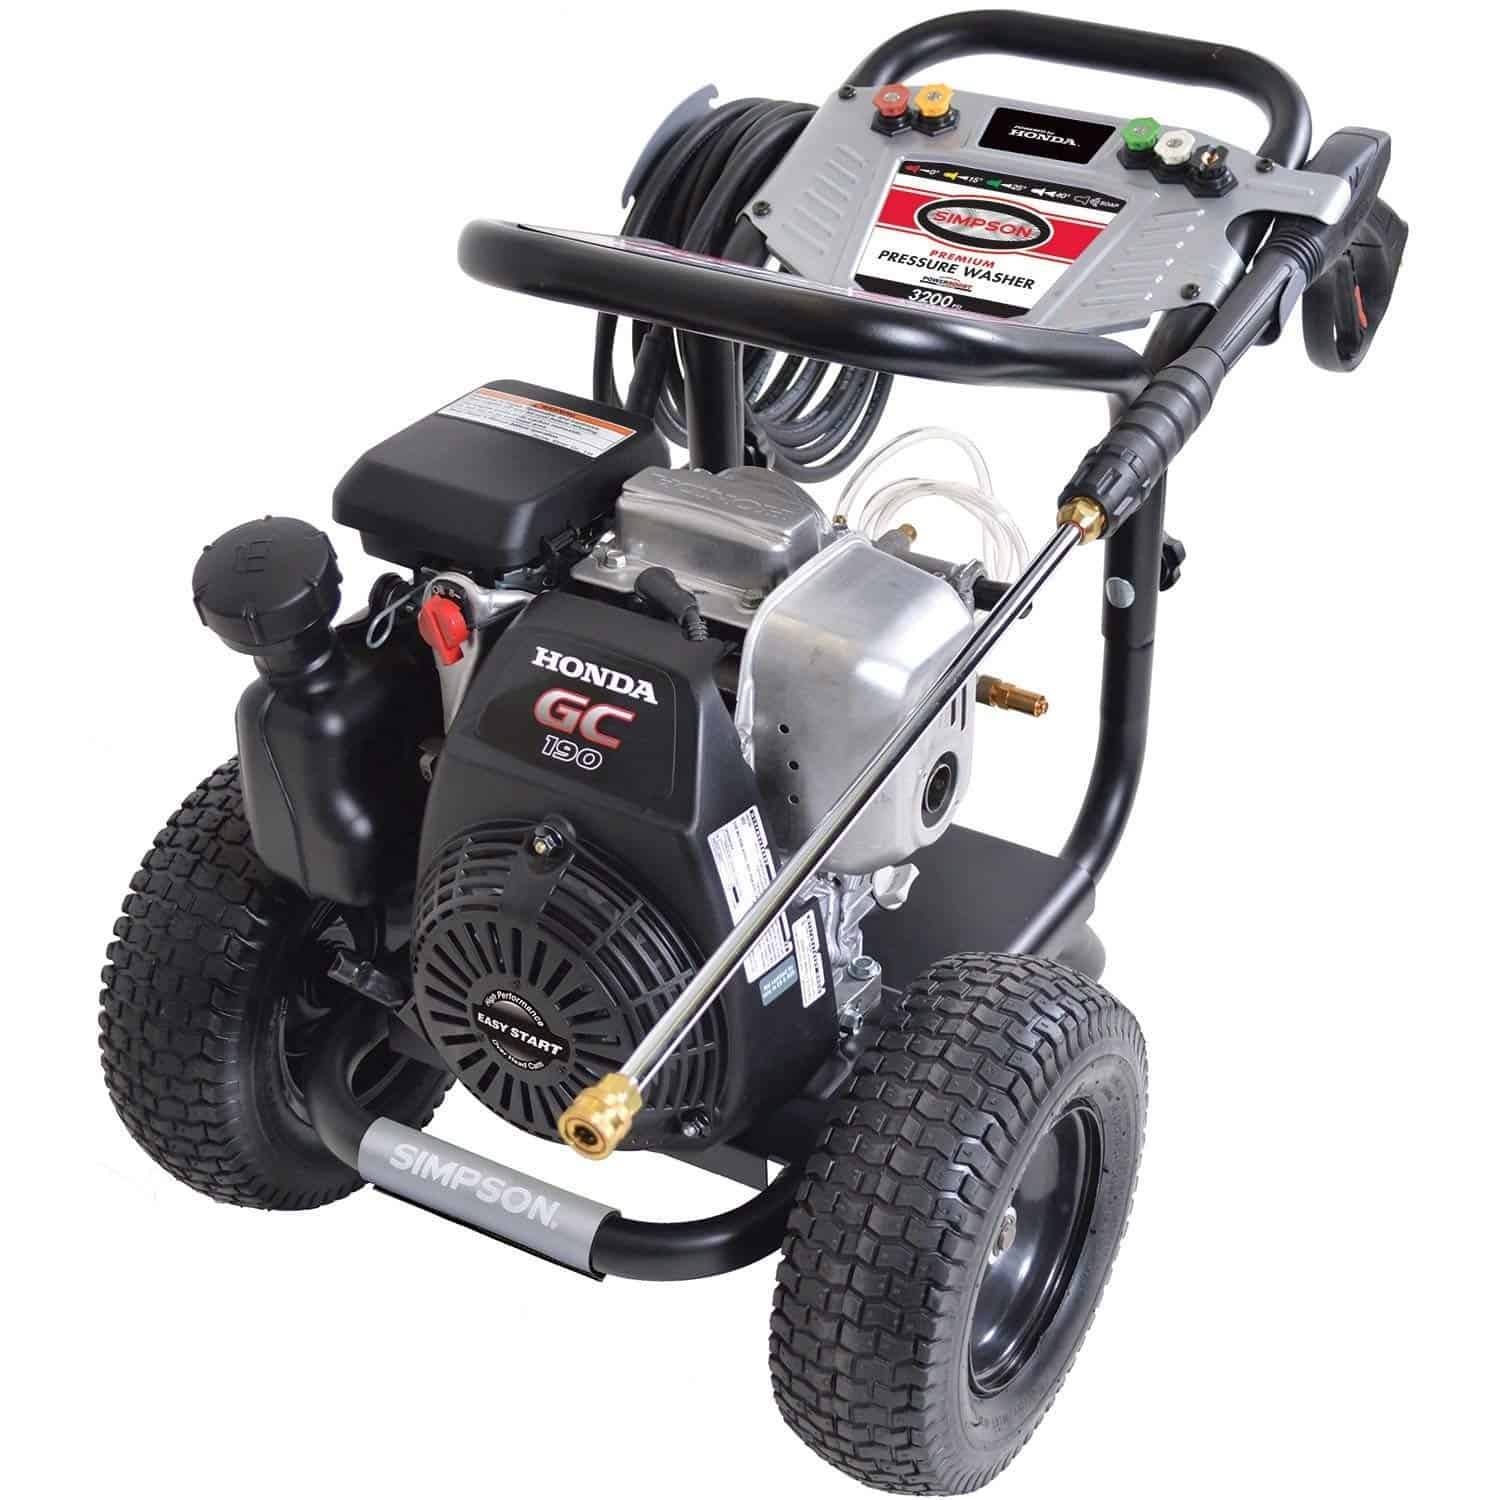 Simpson MegaShot 3200 PSI, Direct Drive Gas Powered Pressure Washer – MSH3224R